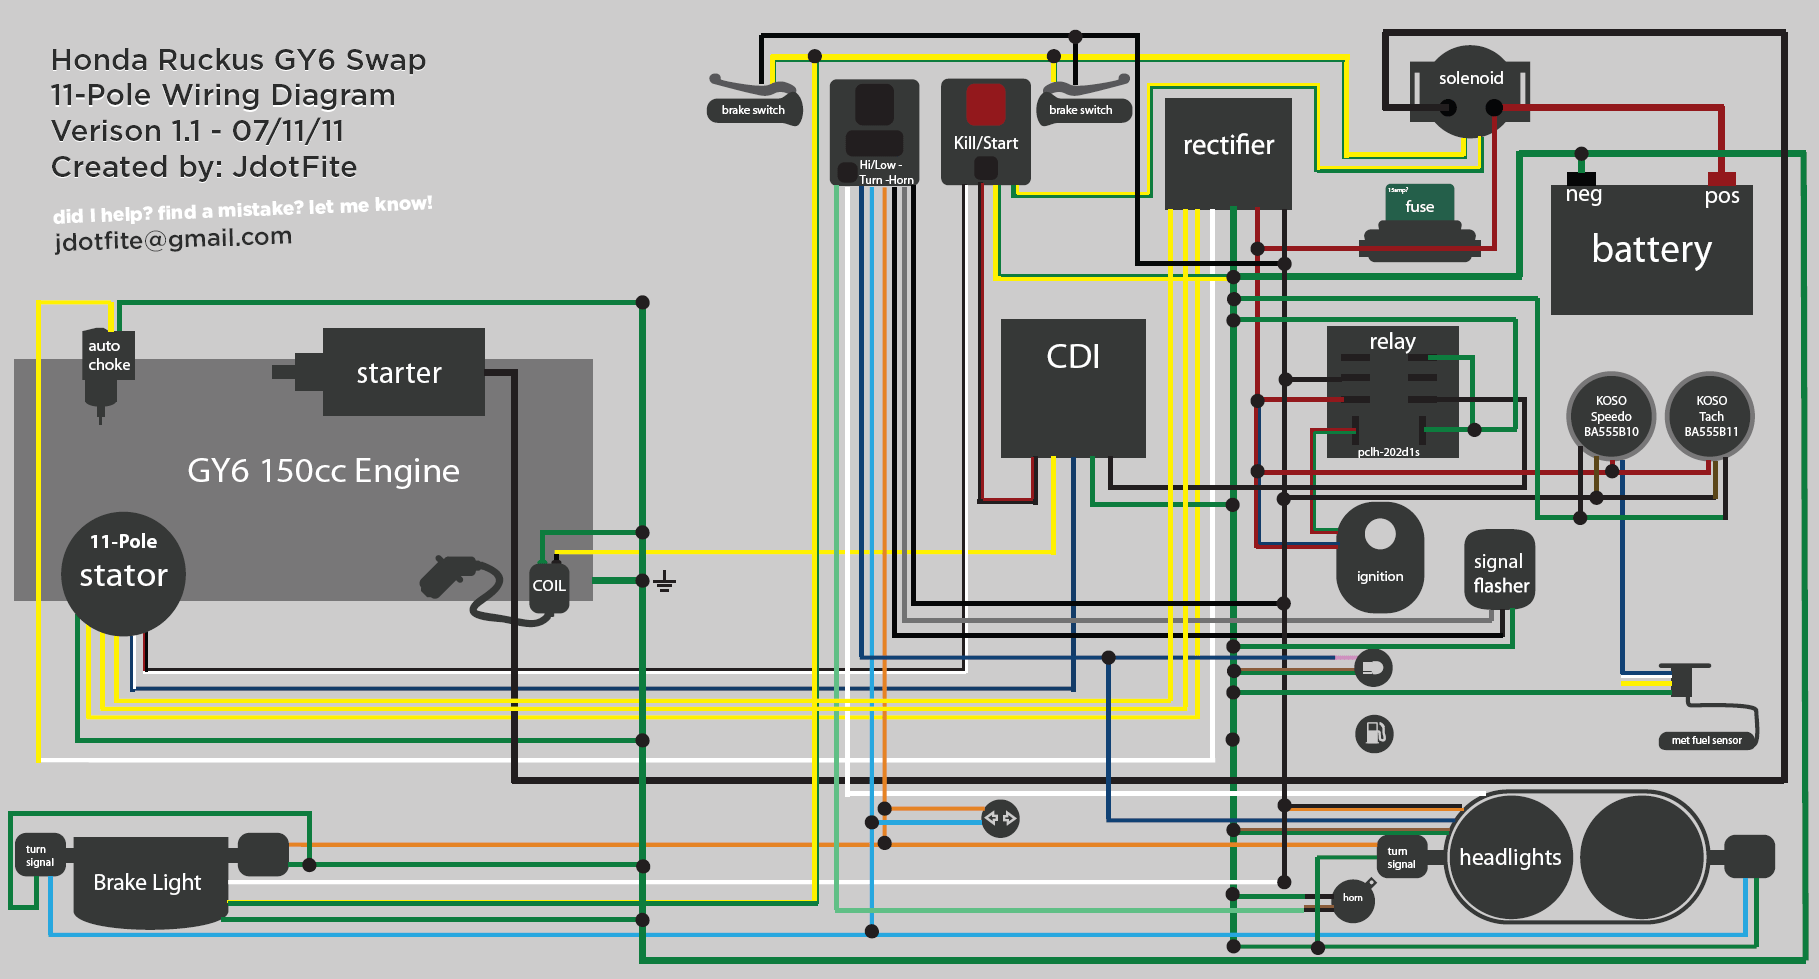 ruckus gy6 wiring diagram gy6 lighting diagram gy6 regulator wiring diagram \u2022 wiring  at reclaimingppi.co